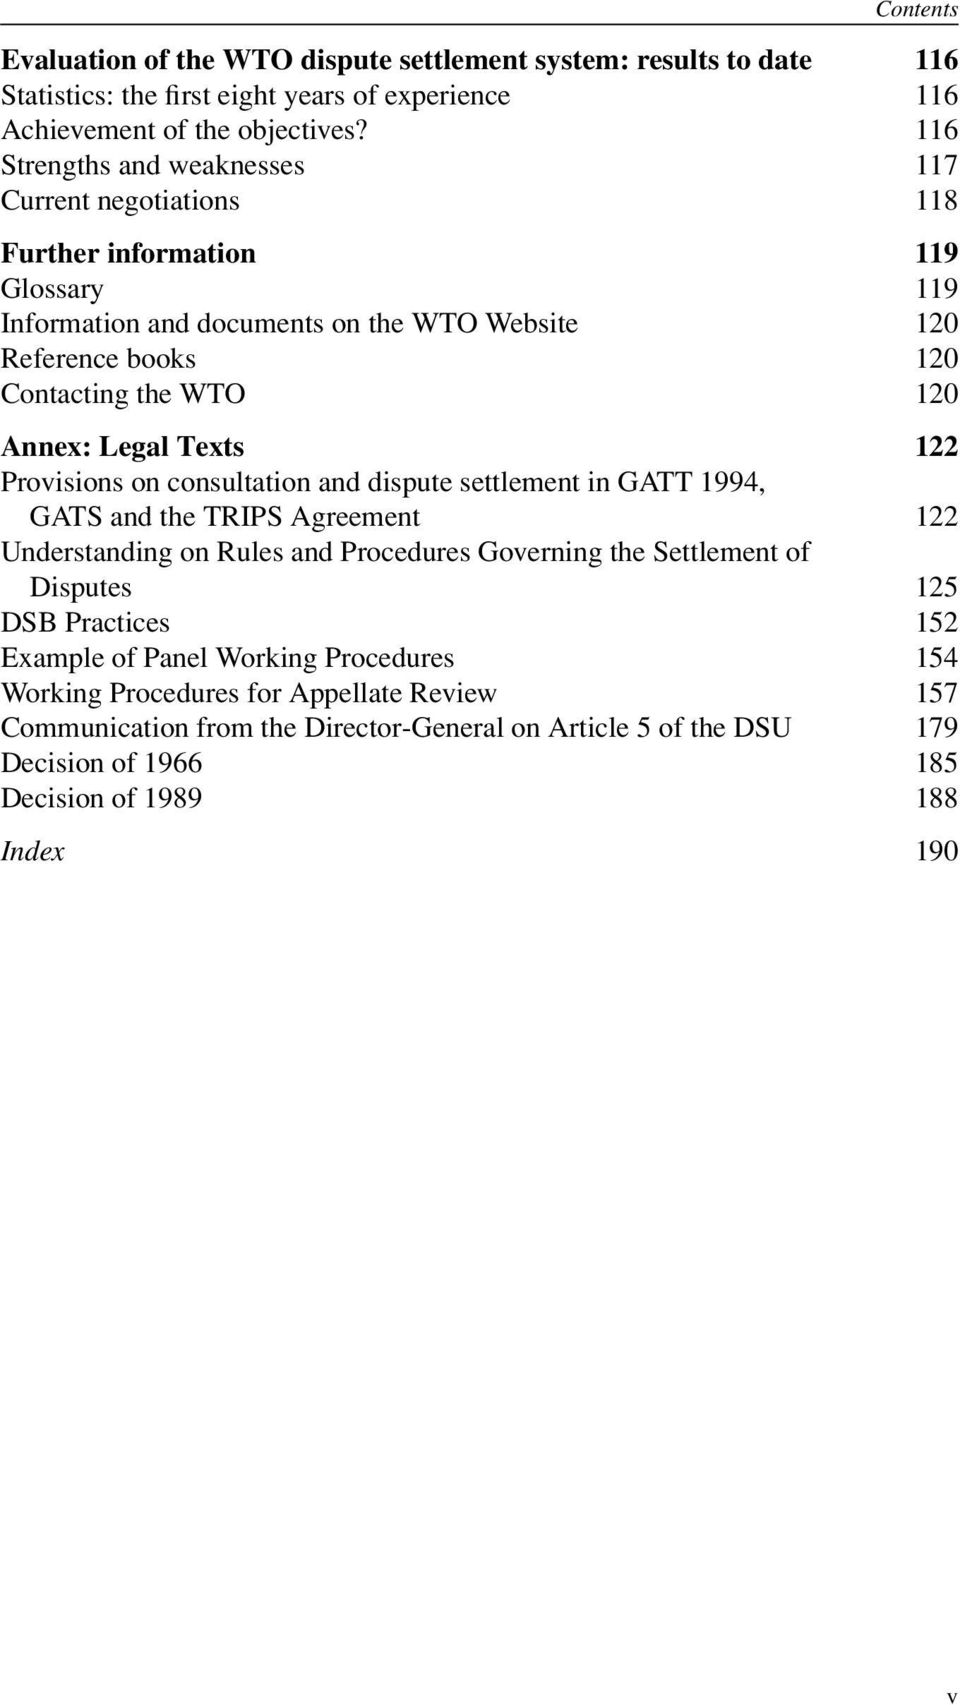 Annex: Legal Texts 122 Provisions on consultation and dispute settlement in GATT 1994, GATS and the TRIPS Agreement 122 Understanding on Rules and Procedures Governing the Settlement of